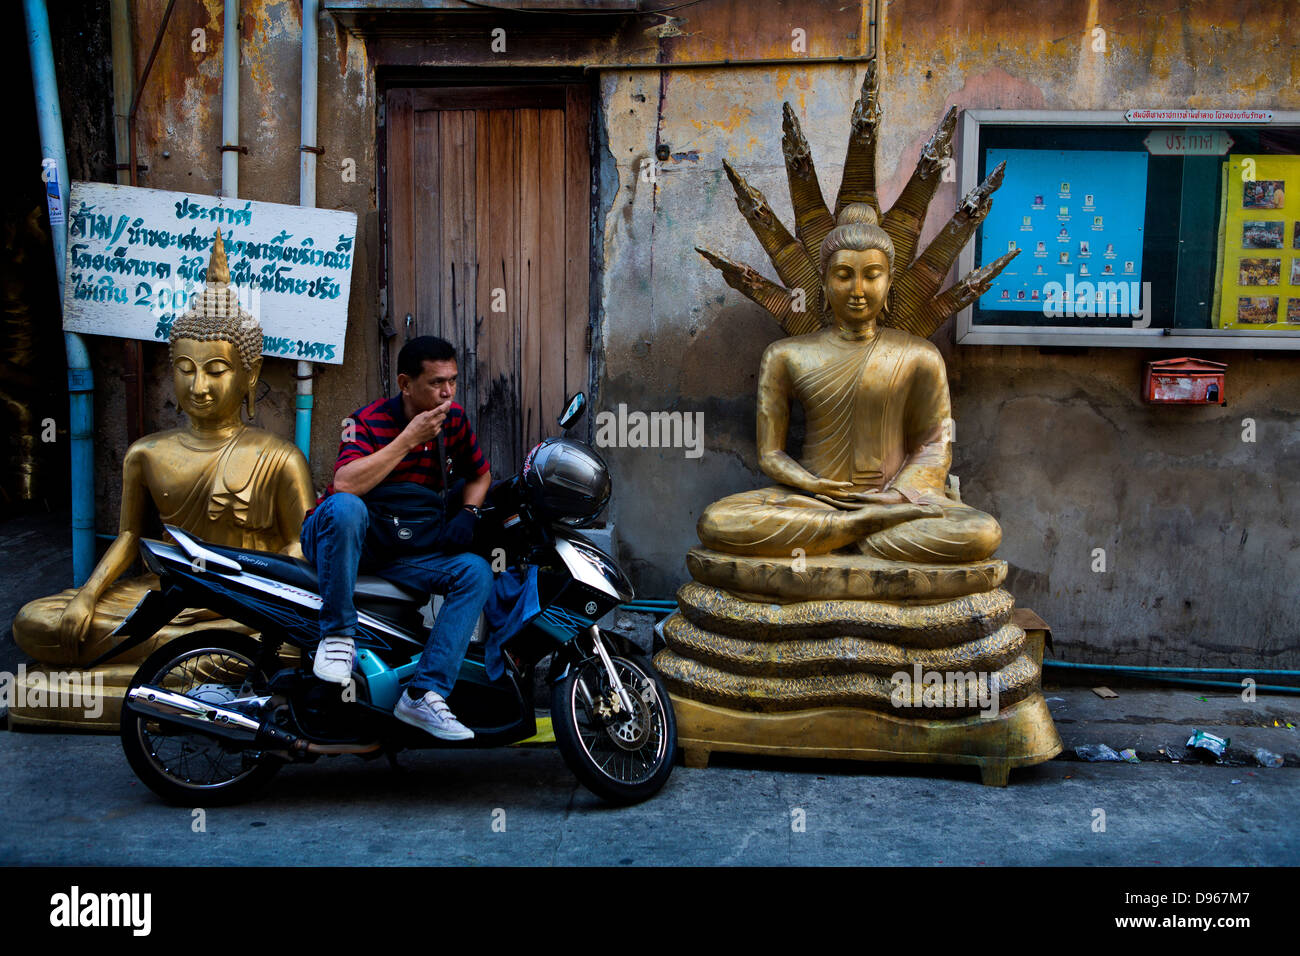 Man resting on motorbike in the area of Bangkok making Buddhist and Hindu icons - Stock Image